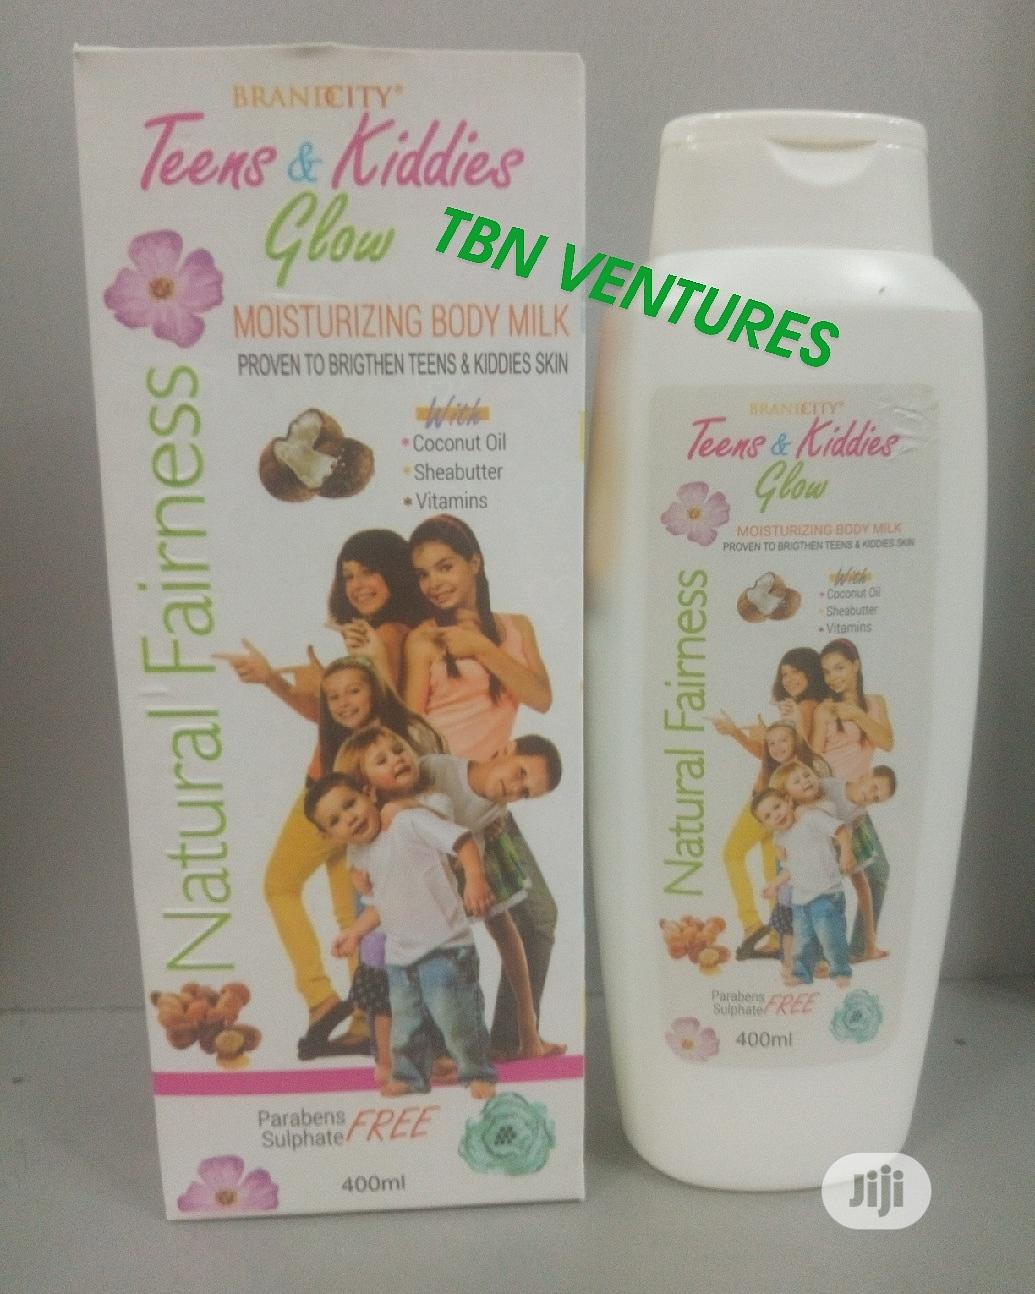 Brandcity Teens & Kiddies Glow Body Milk -400ml